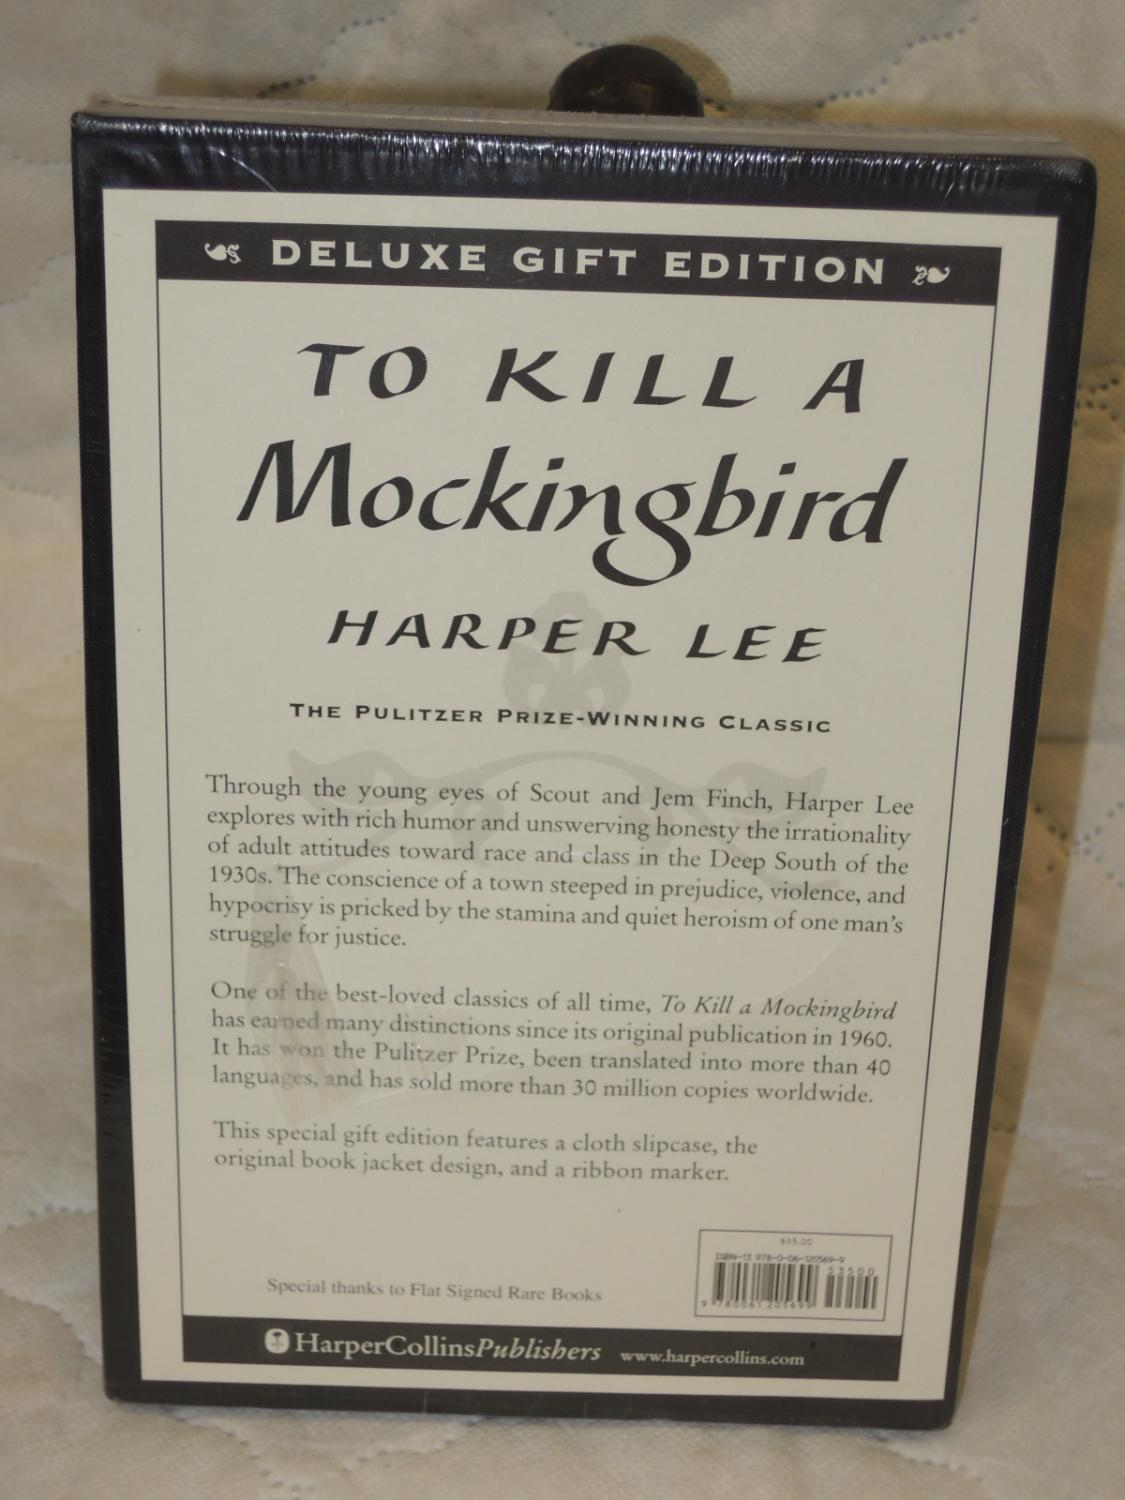 harper lee explore heroism in to kill a mockingbird Three american masters were born with 210 miles of one another in alabama: nat king cole, harper lee and hank williams nelle harper lee was born on april 28, 1926, and raised in monroeville, alabama her father, amasa coleman lee, was a prominent figure in town, recognized for his work as a lawyer and newspaper editor lee set her novels.